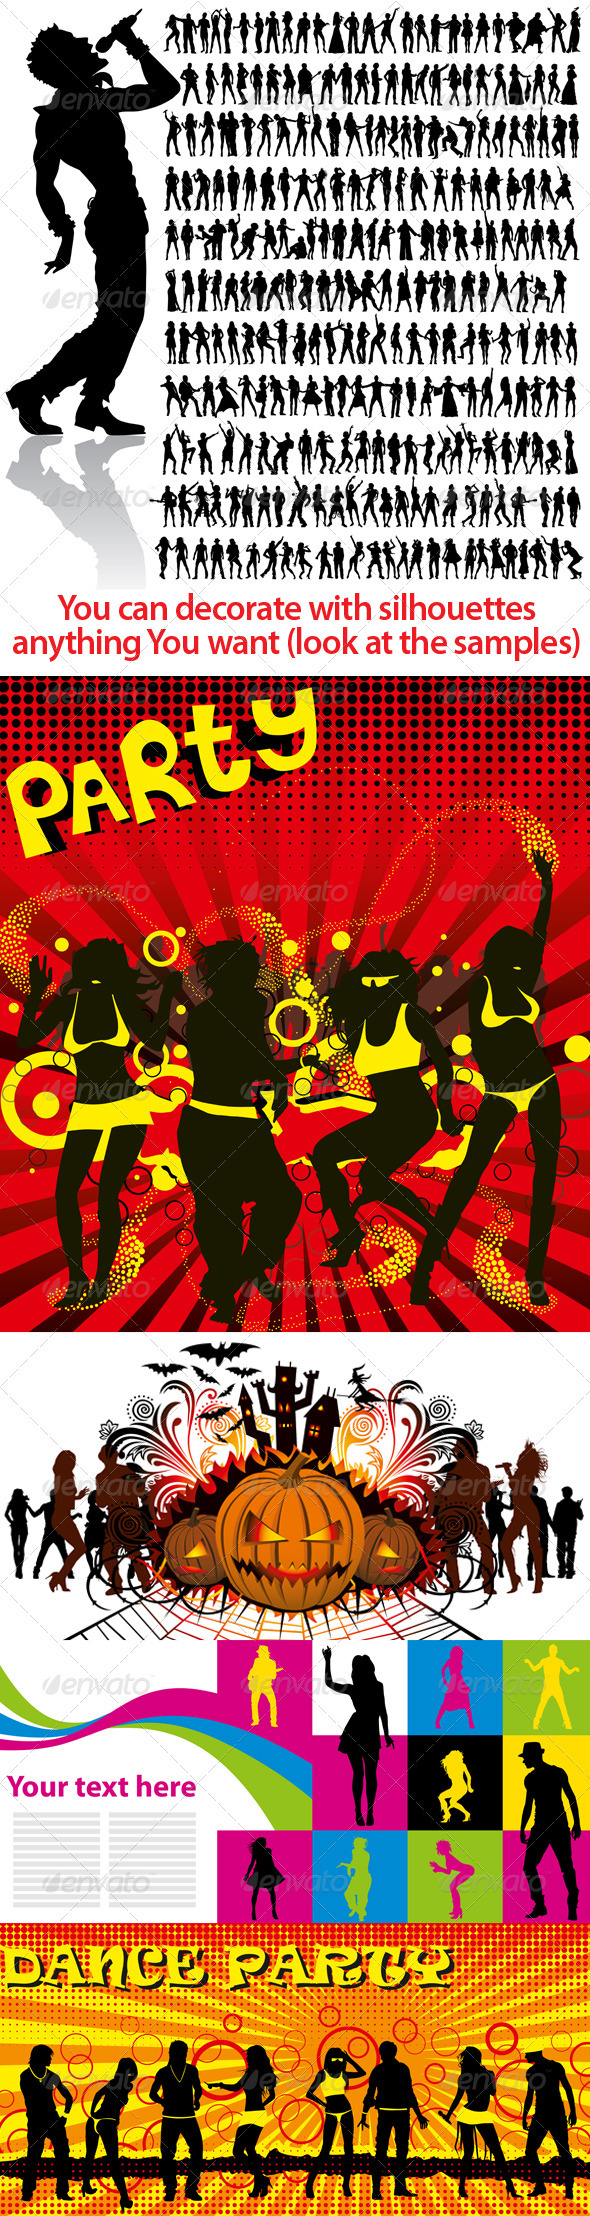 Dancing and Singing People's Silhouettes Big Set - Decorative Vectors